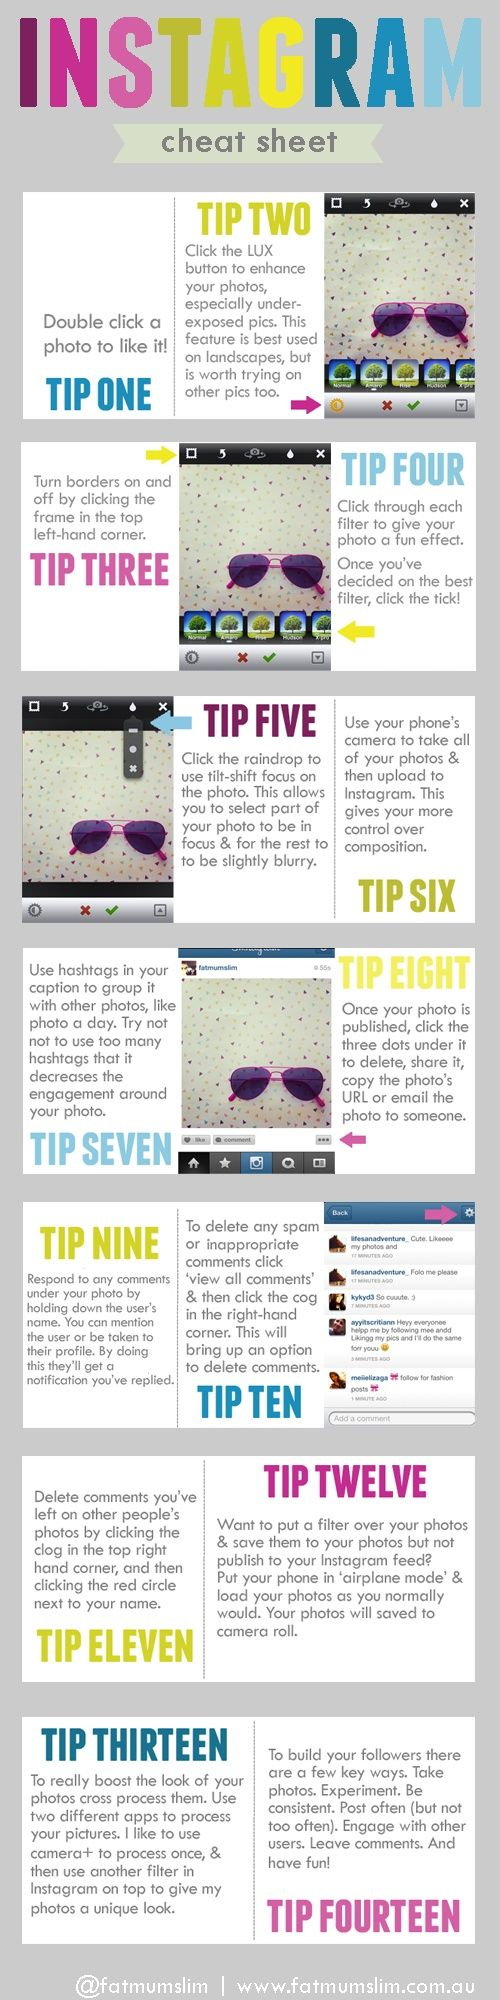 Instagram Tips   #instagram #socialmedia #tips   Agility Resources | Social Agility  www.AgilityResourcesInc.com